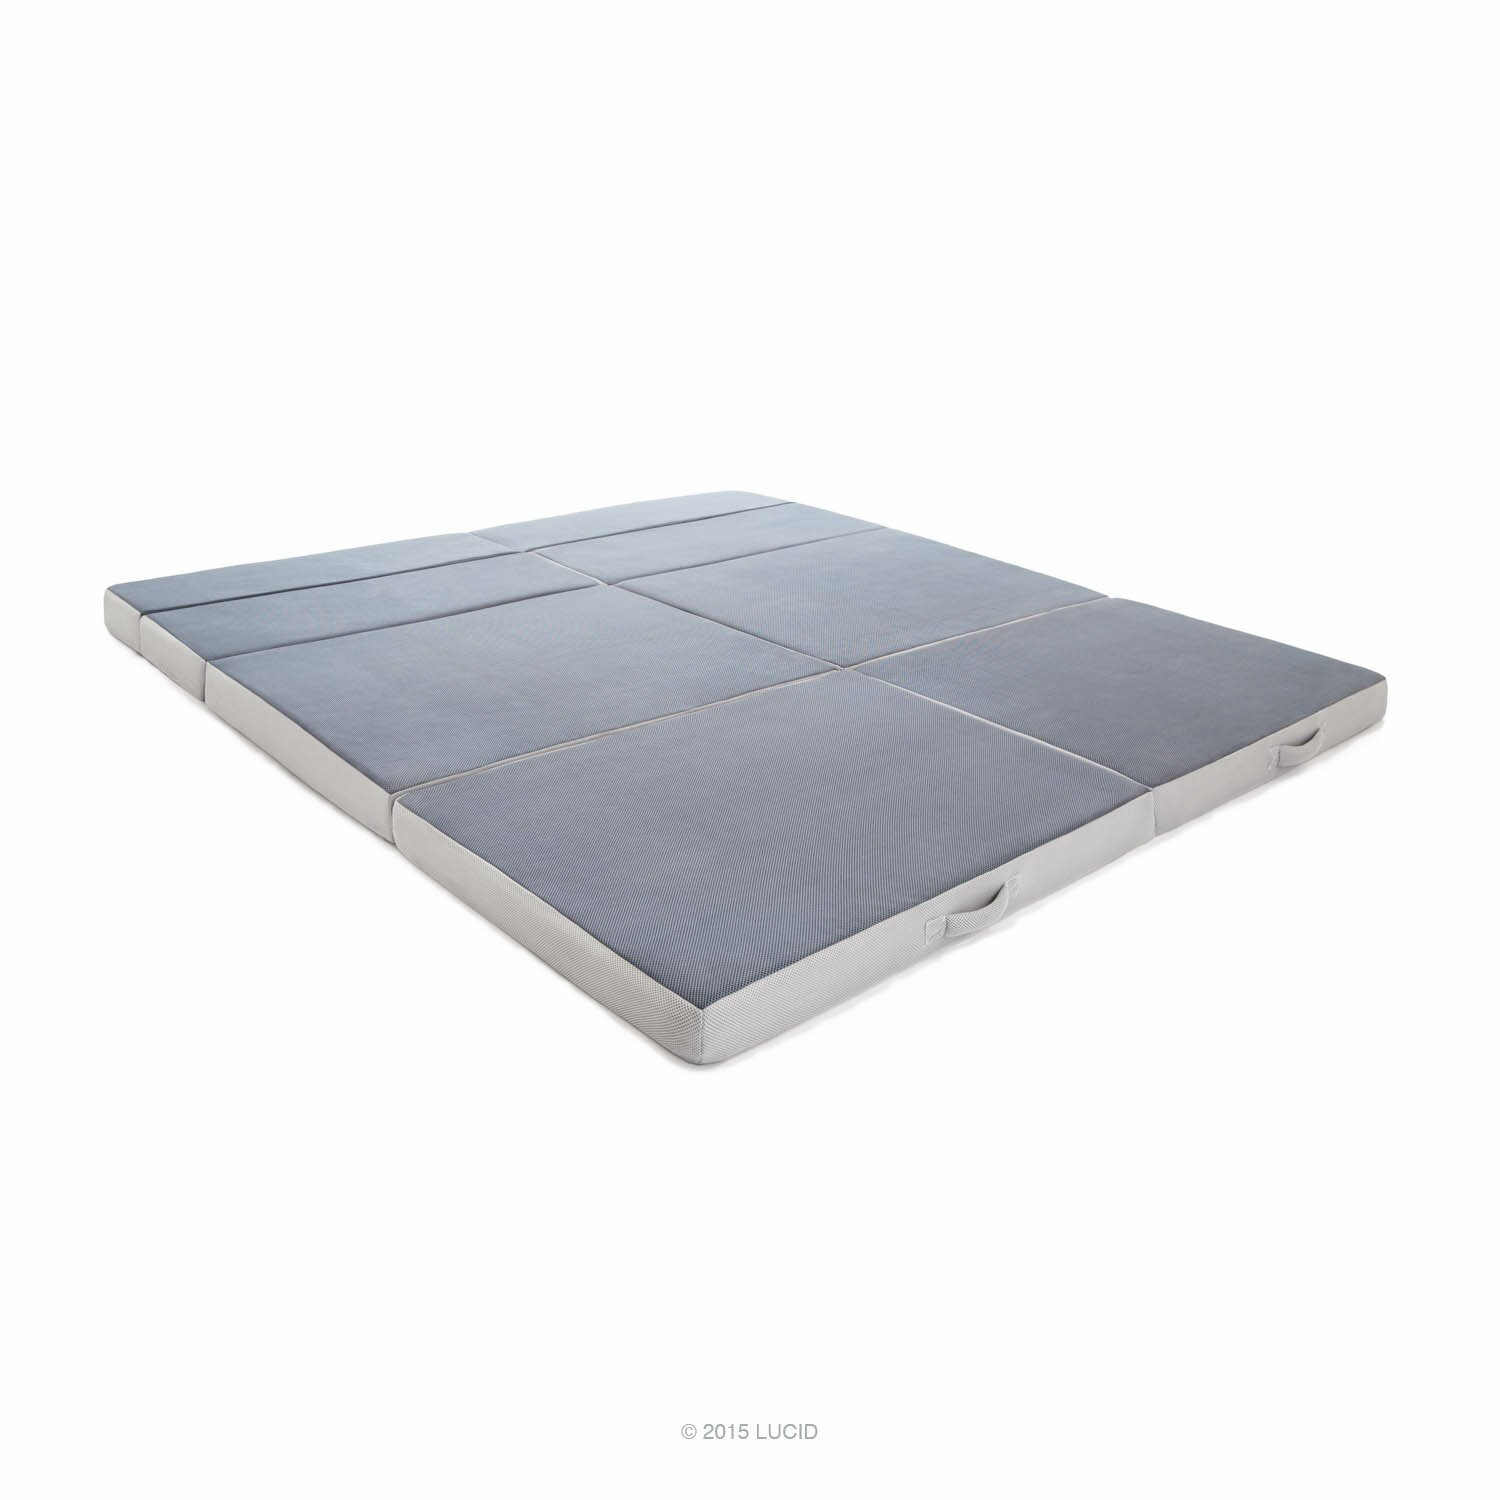 Lucid Folding Foam Mattress & Reviews